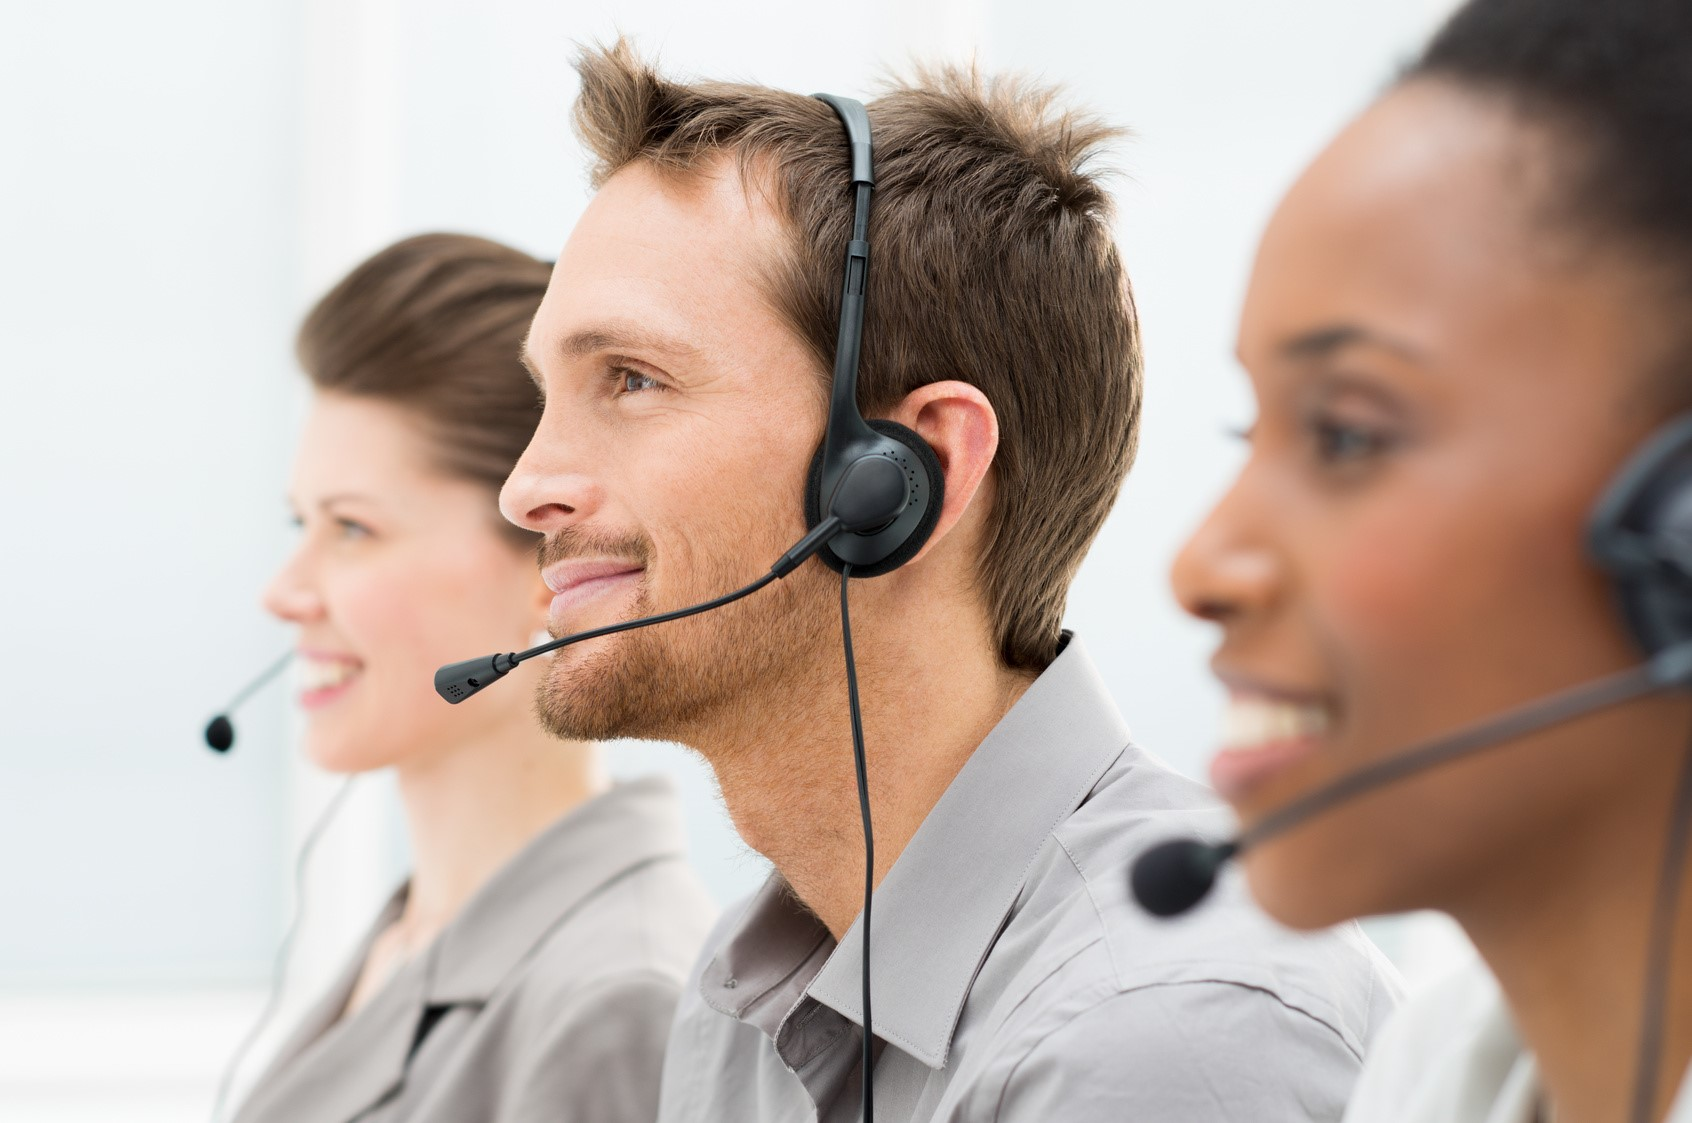 call scripting in Call centers